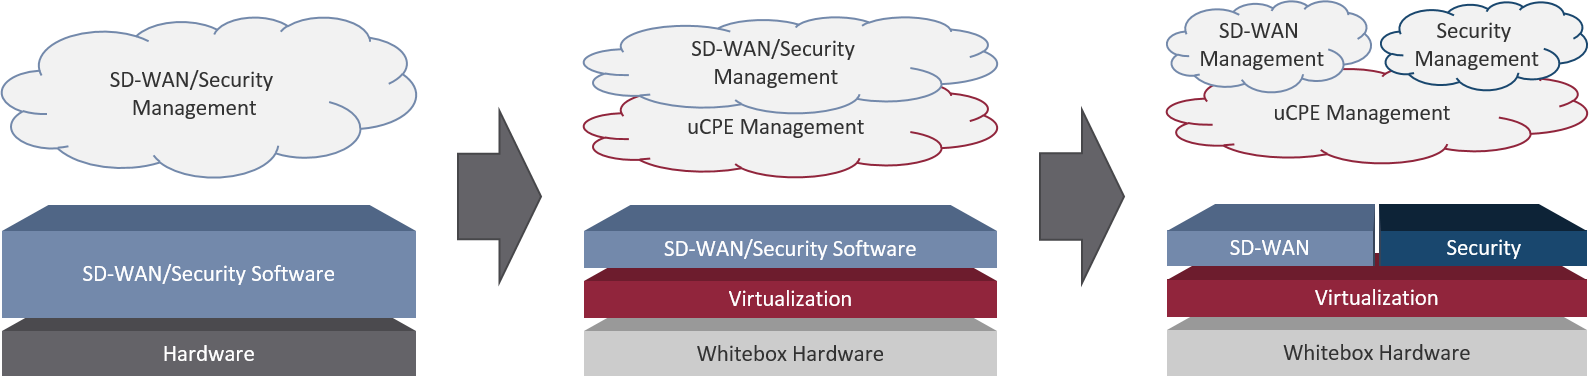 Migrating to SD-WAN on uCPE